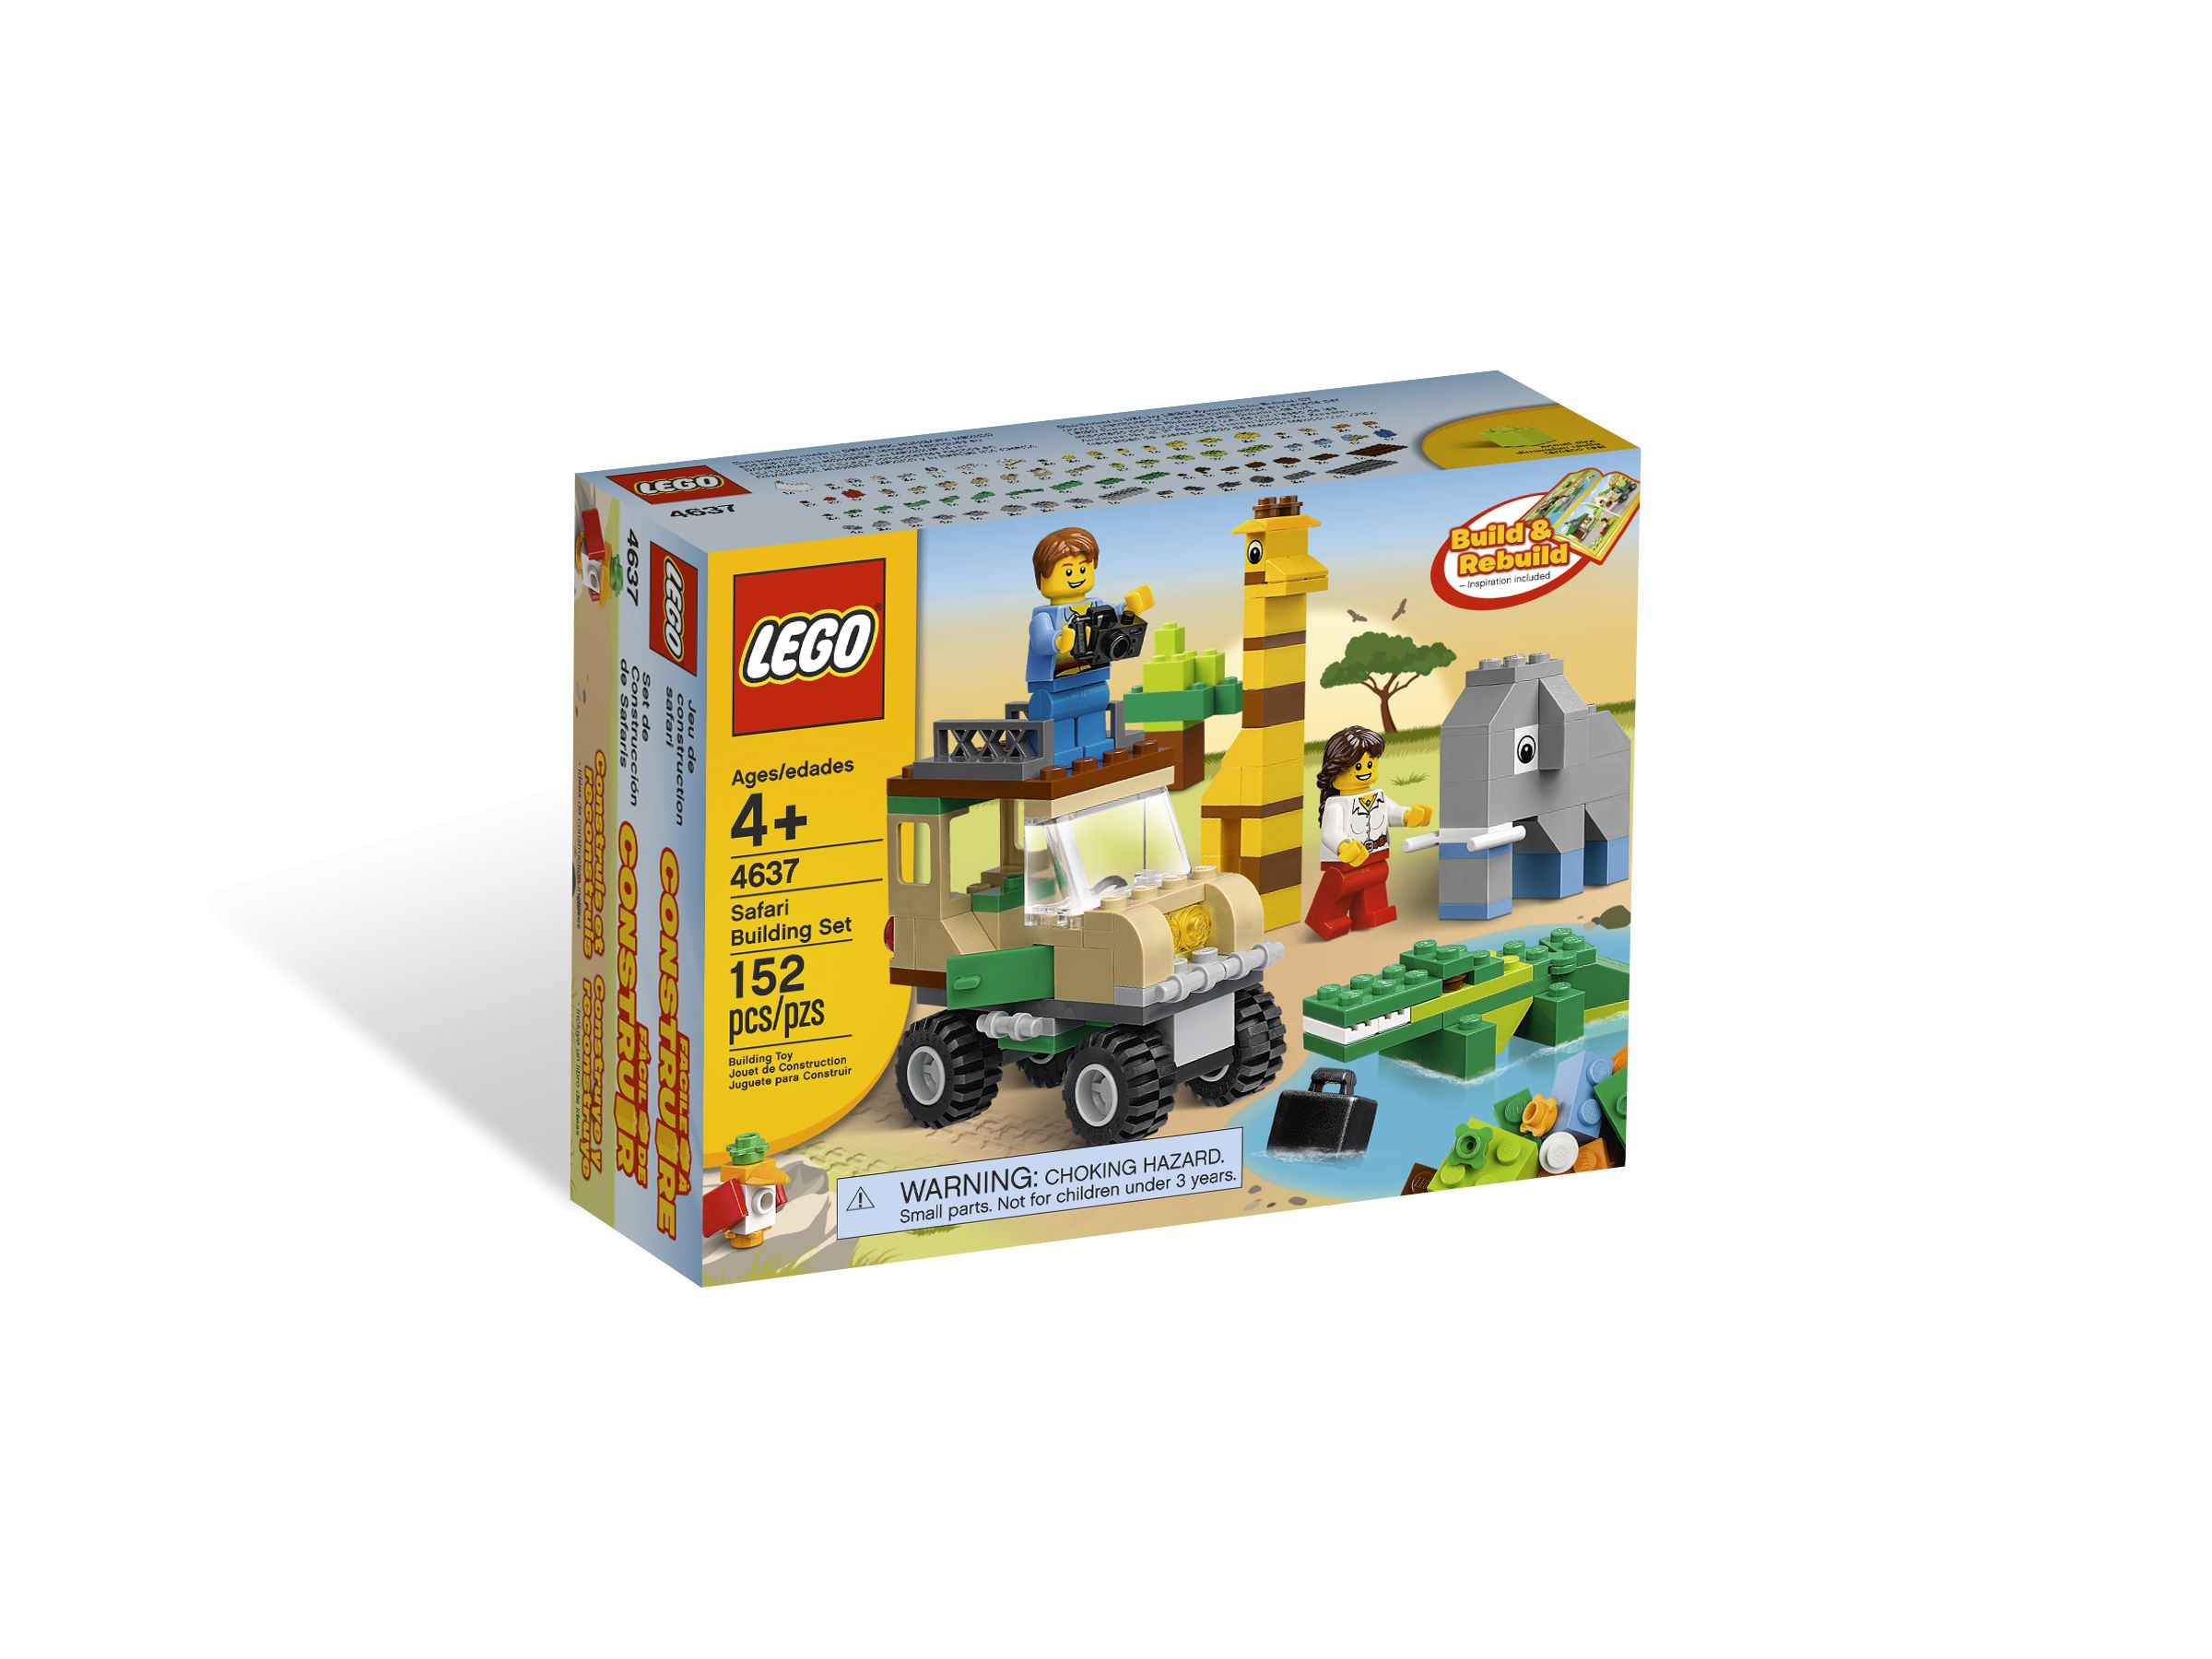 LEGO Bricks and More 4637 Safari Building Set LEGO_4637_alt1.jpg